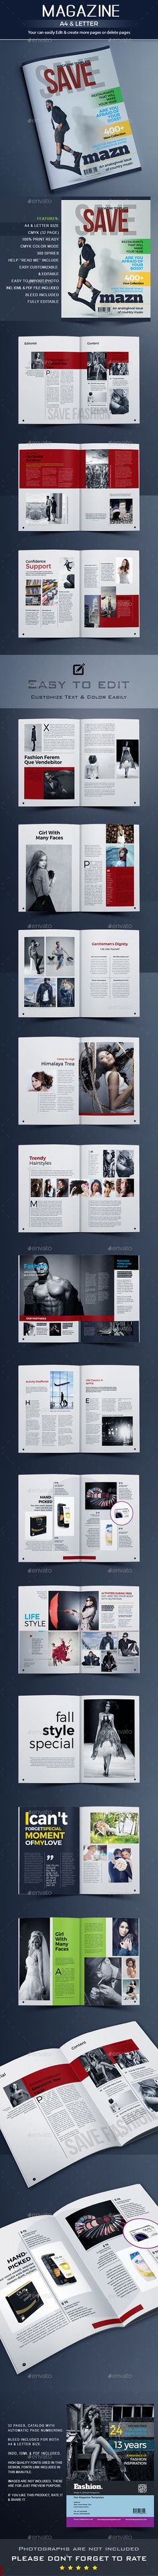 Magazine by artlab99 Magazine TemplateThis Magazine Template can be used for any business purpose or other Projects. image input are super easy to Cust